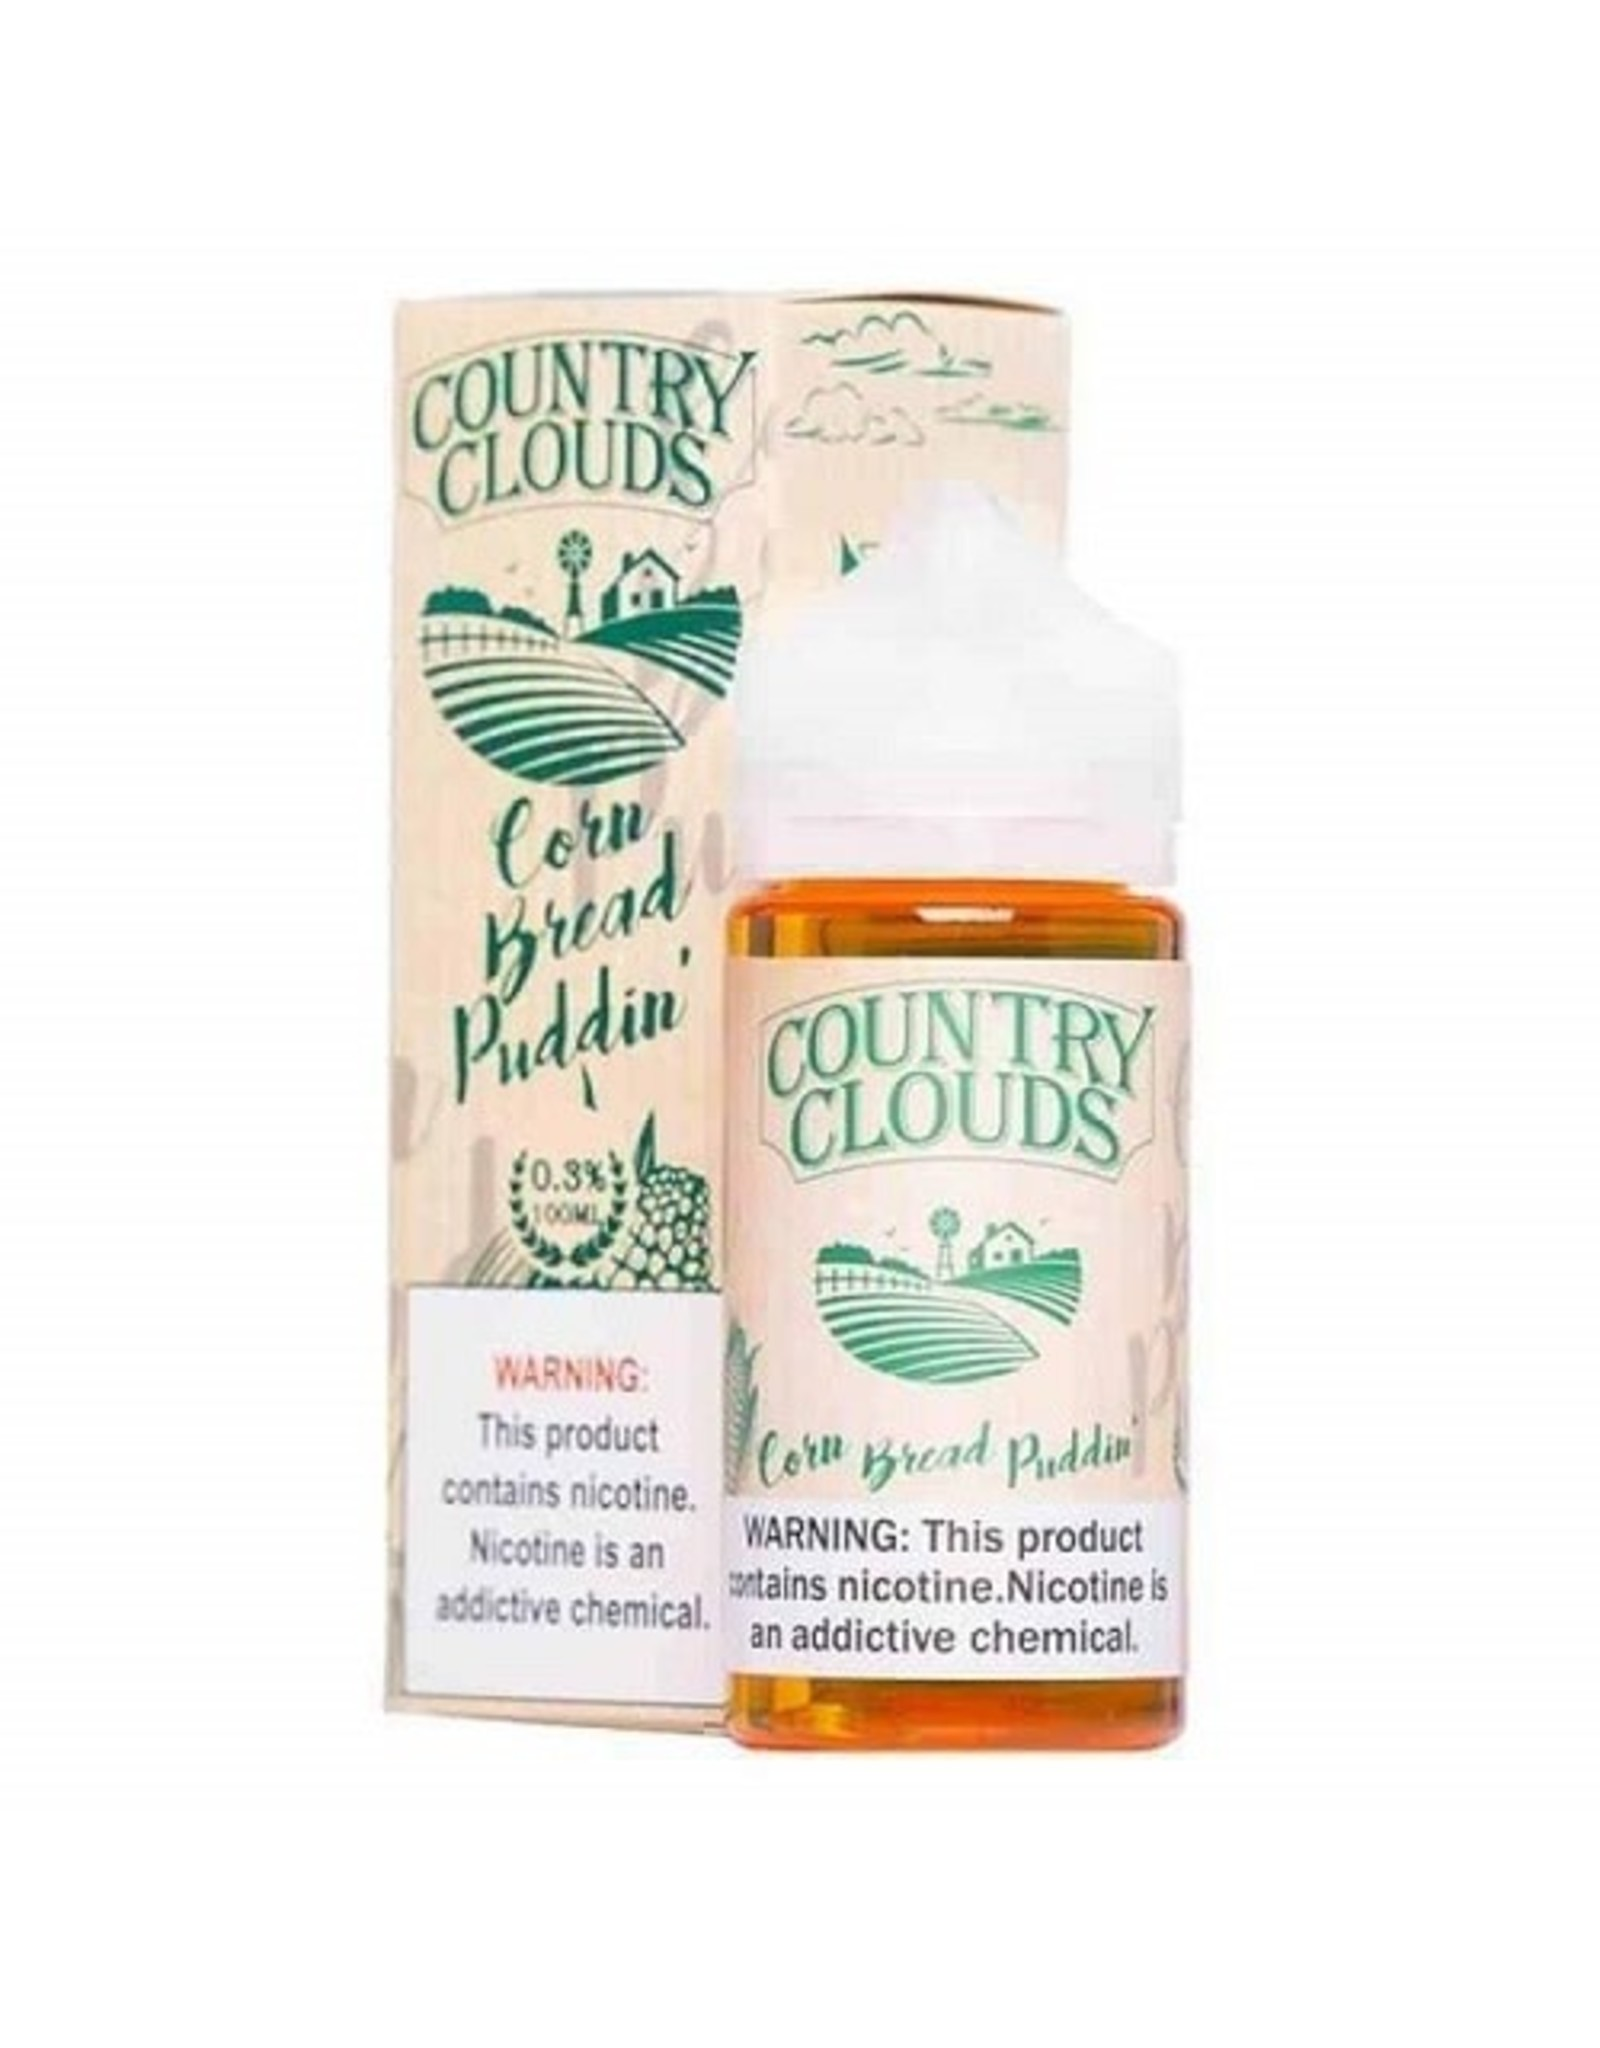 Country Clouds Country Clouds E-juice